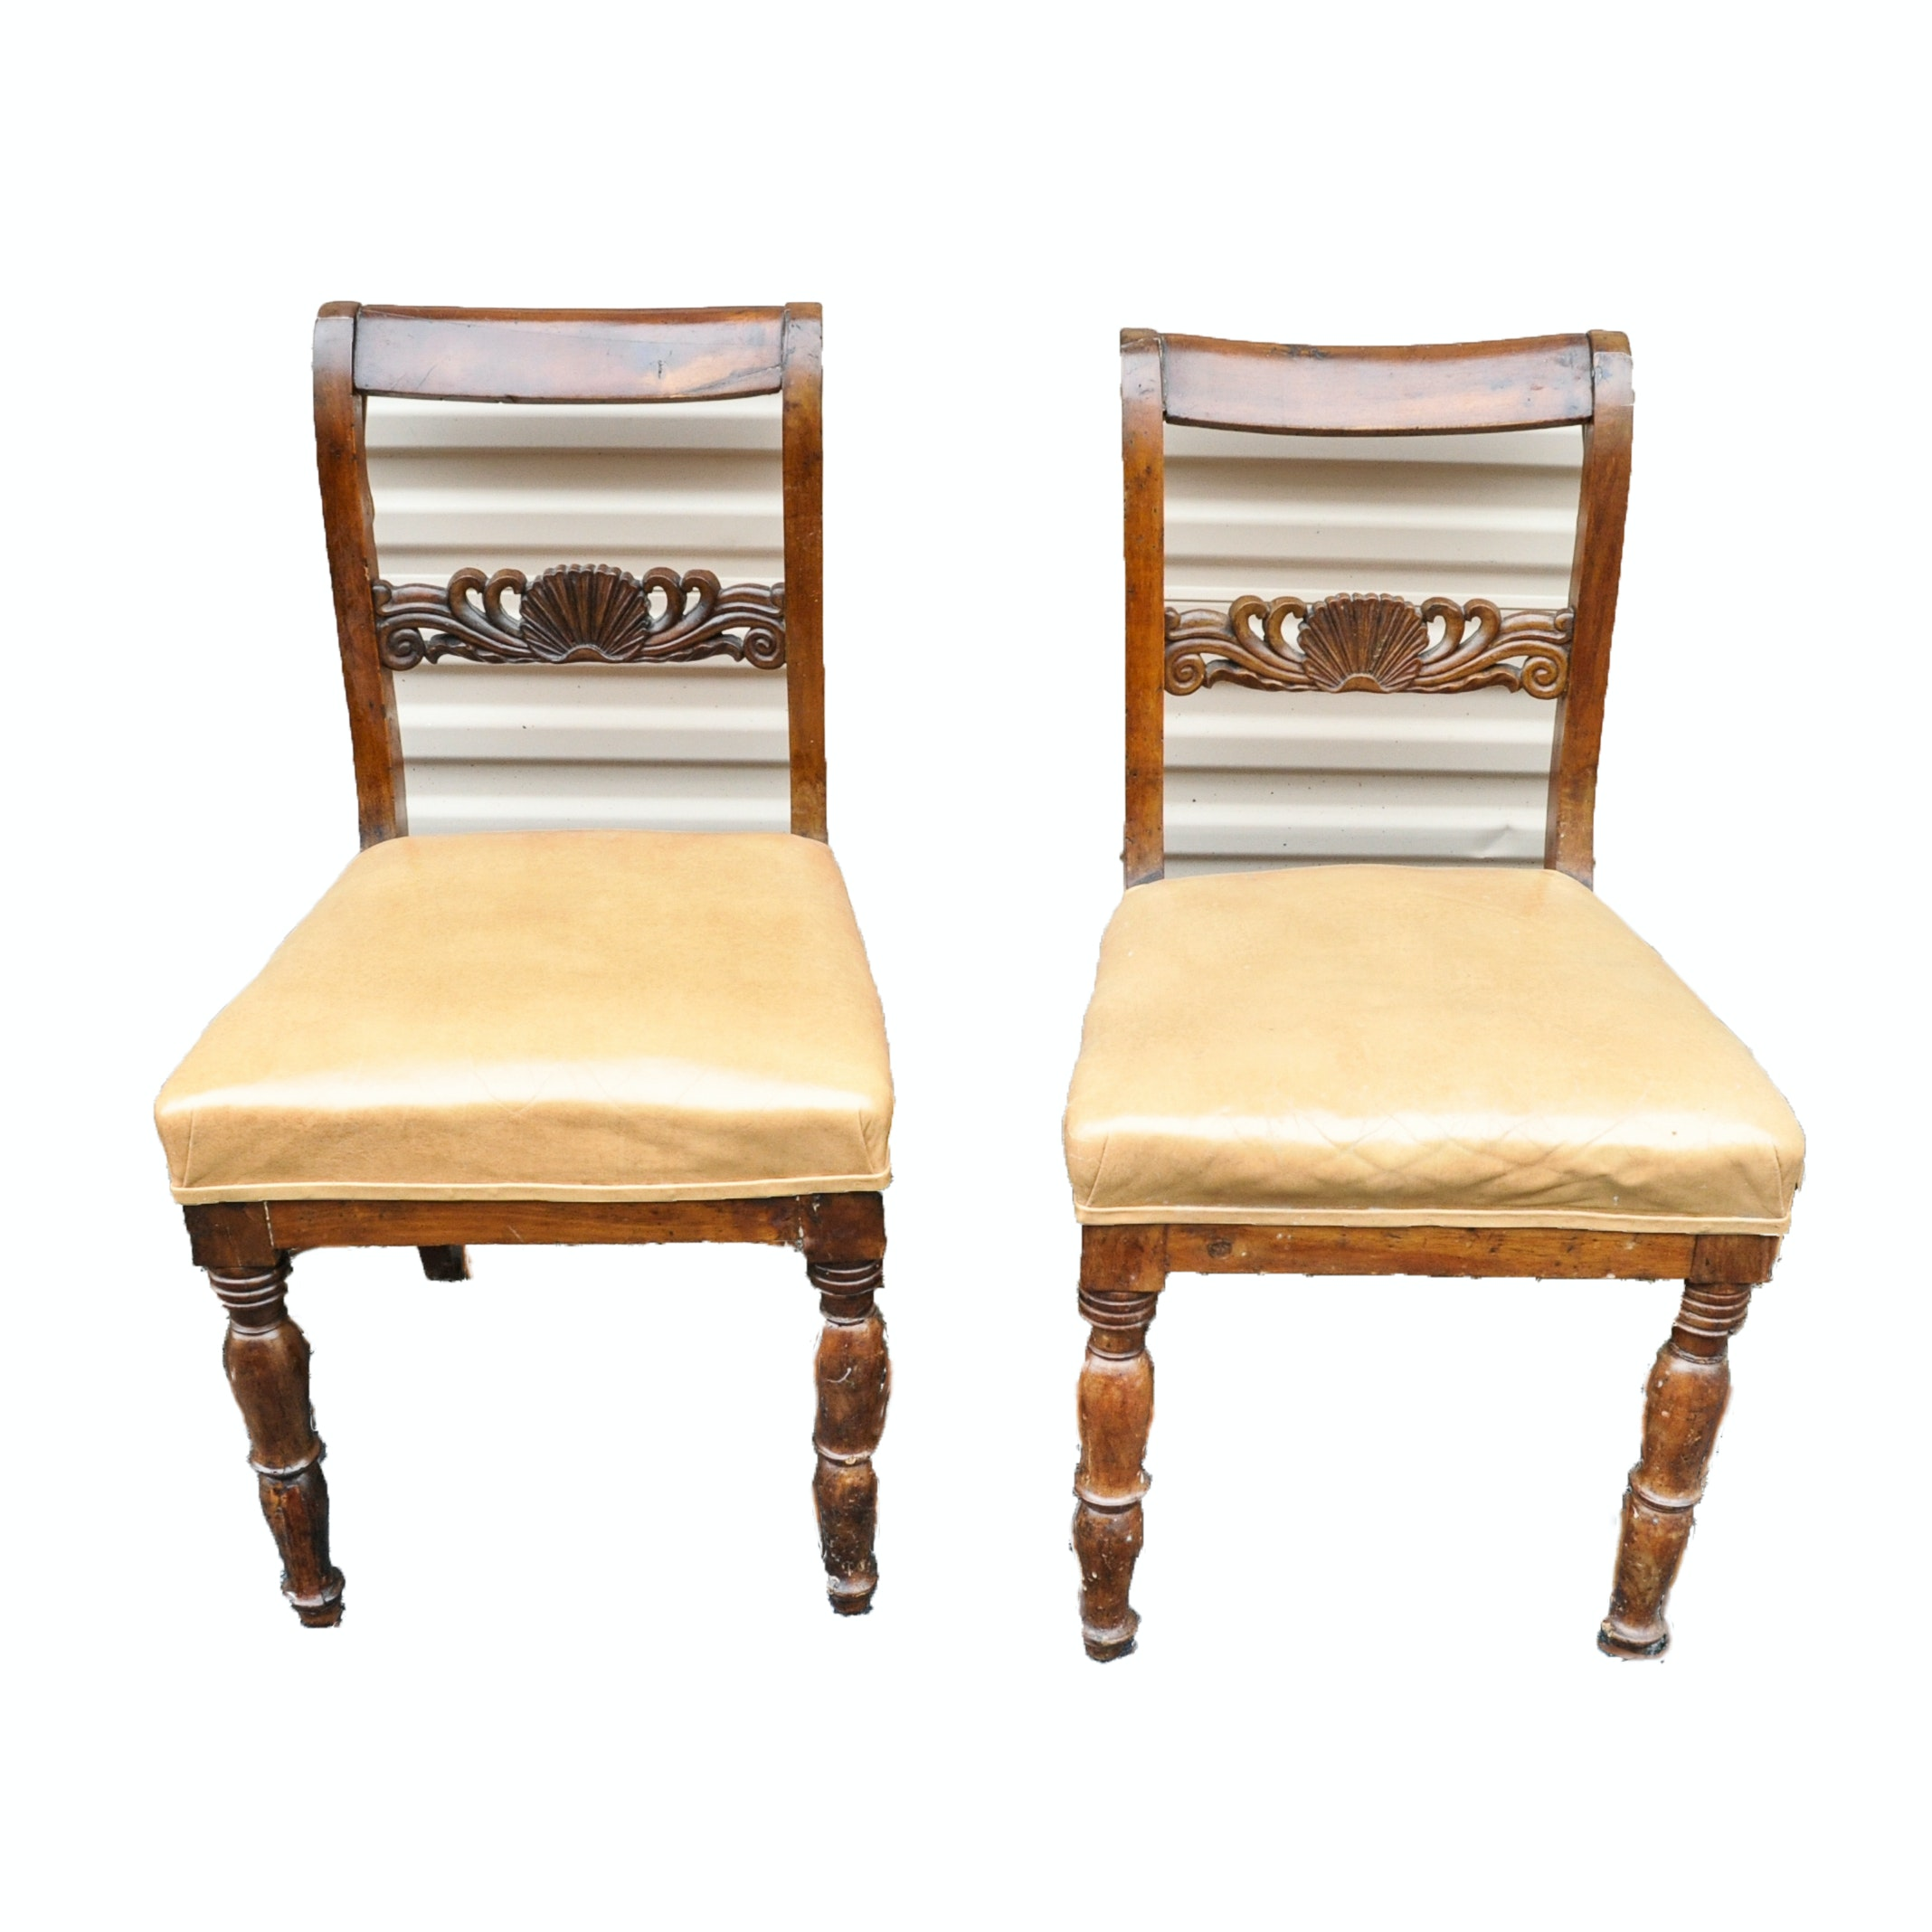 Antique Queen Anne Style Side Chairs